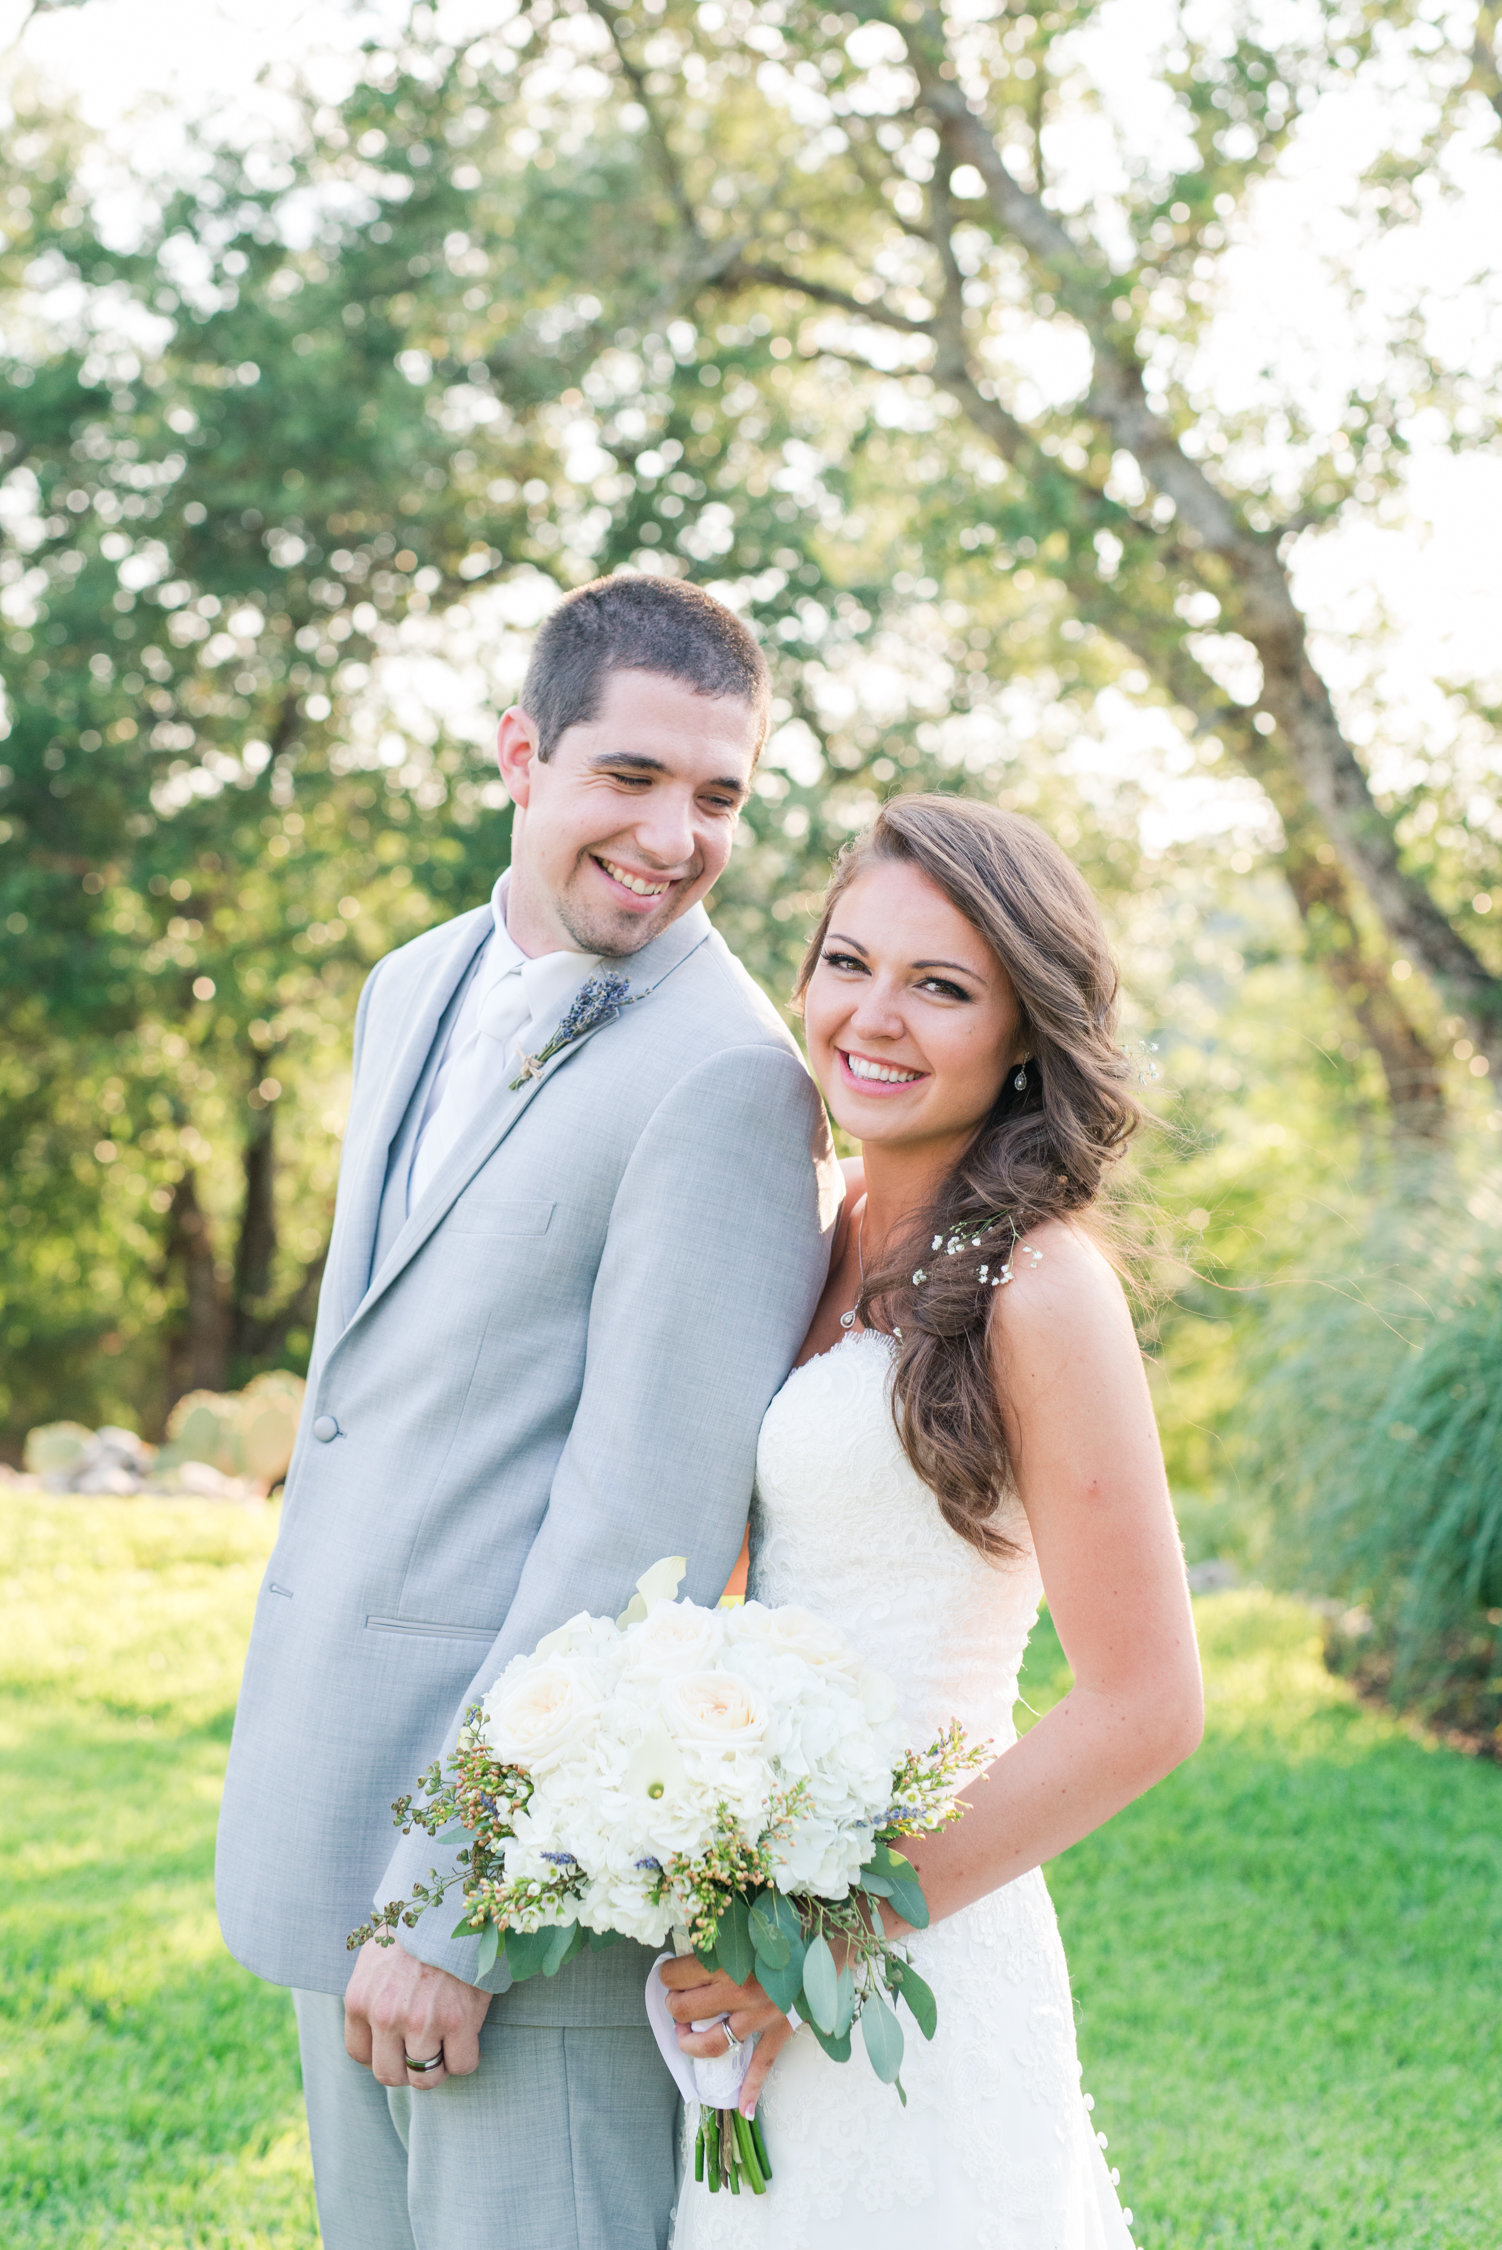 Traditional wedding at The springs in Georgetown, Texas